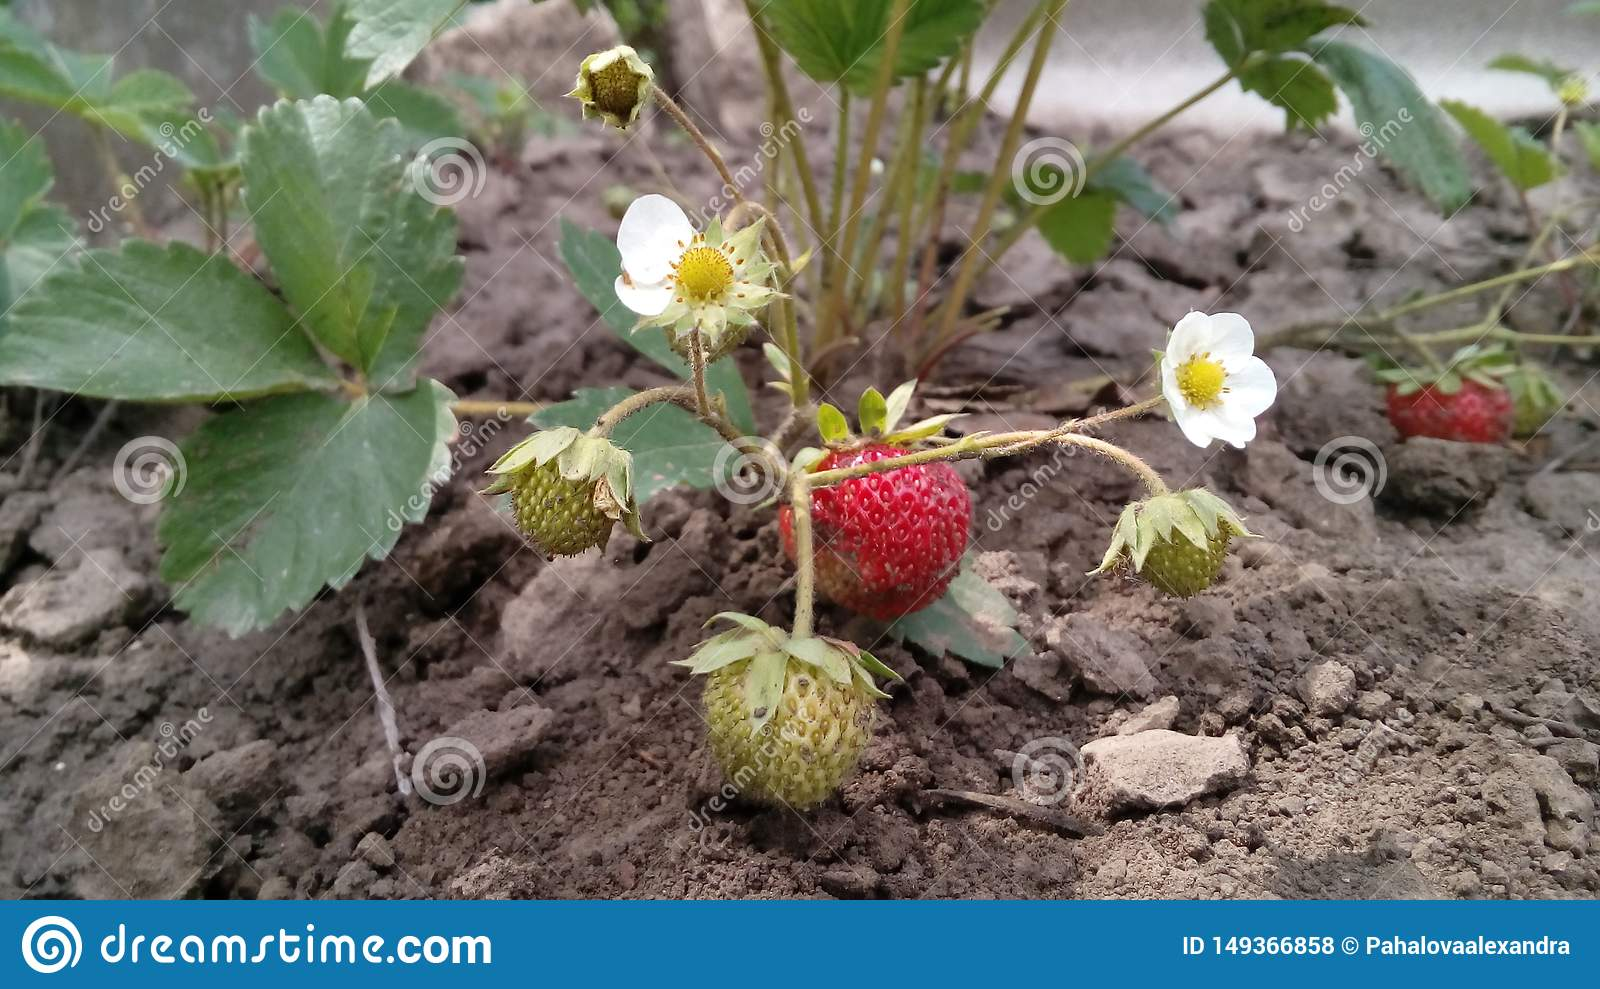 Strawberry Bush with flowers and strawberries